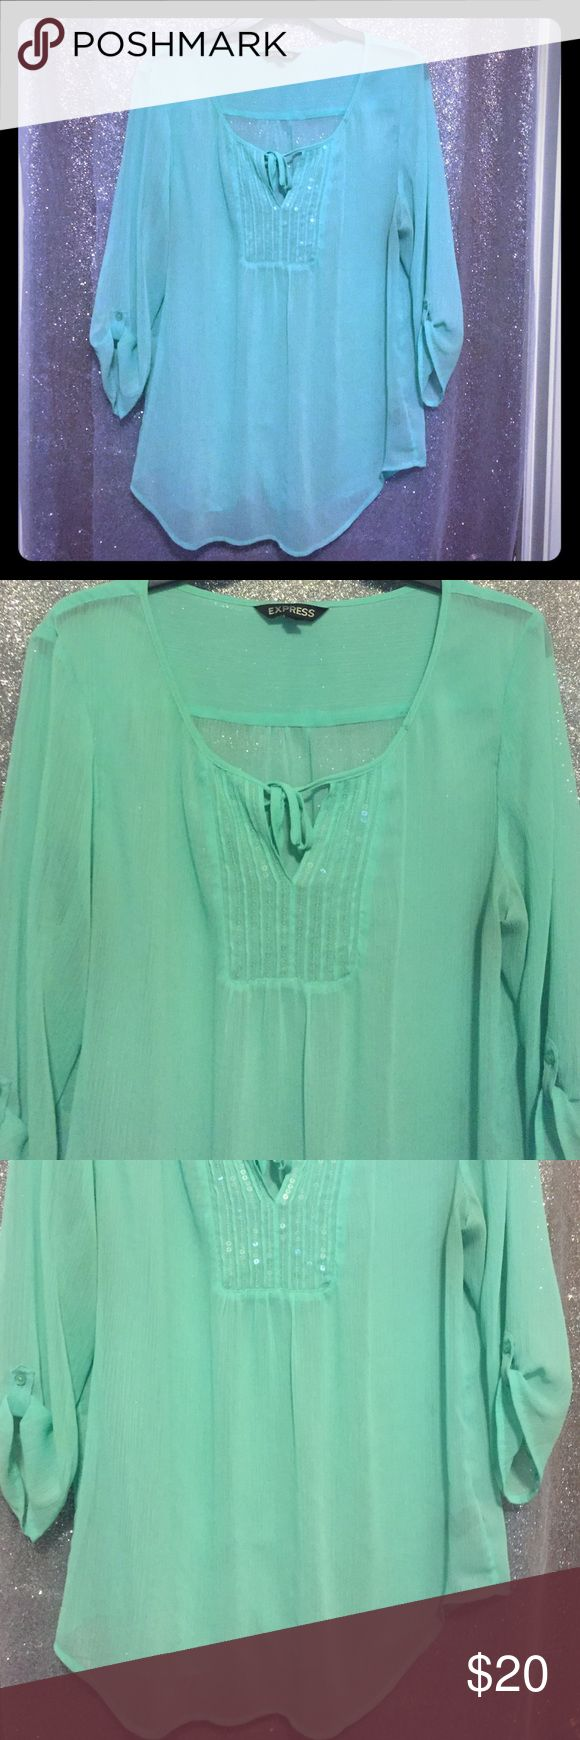 Express Light Turquoise Shirt Perfect for any occasion or work! So comfortable because it's flowy and light. Express Tops Blouses